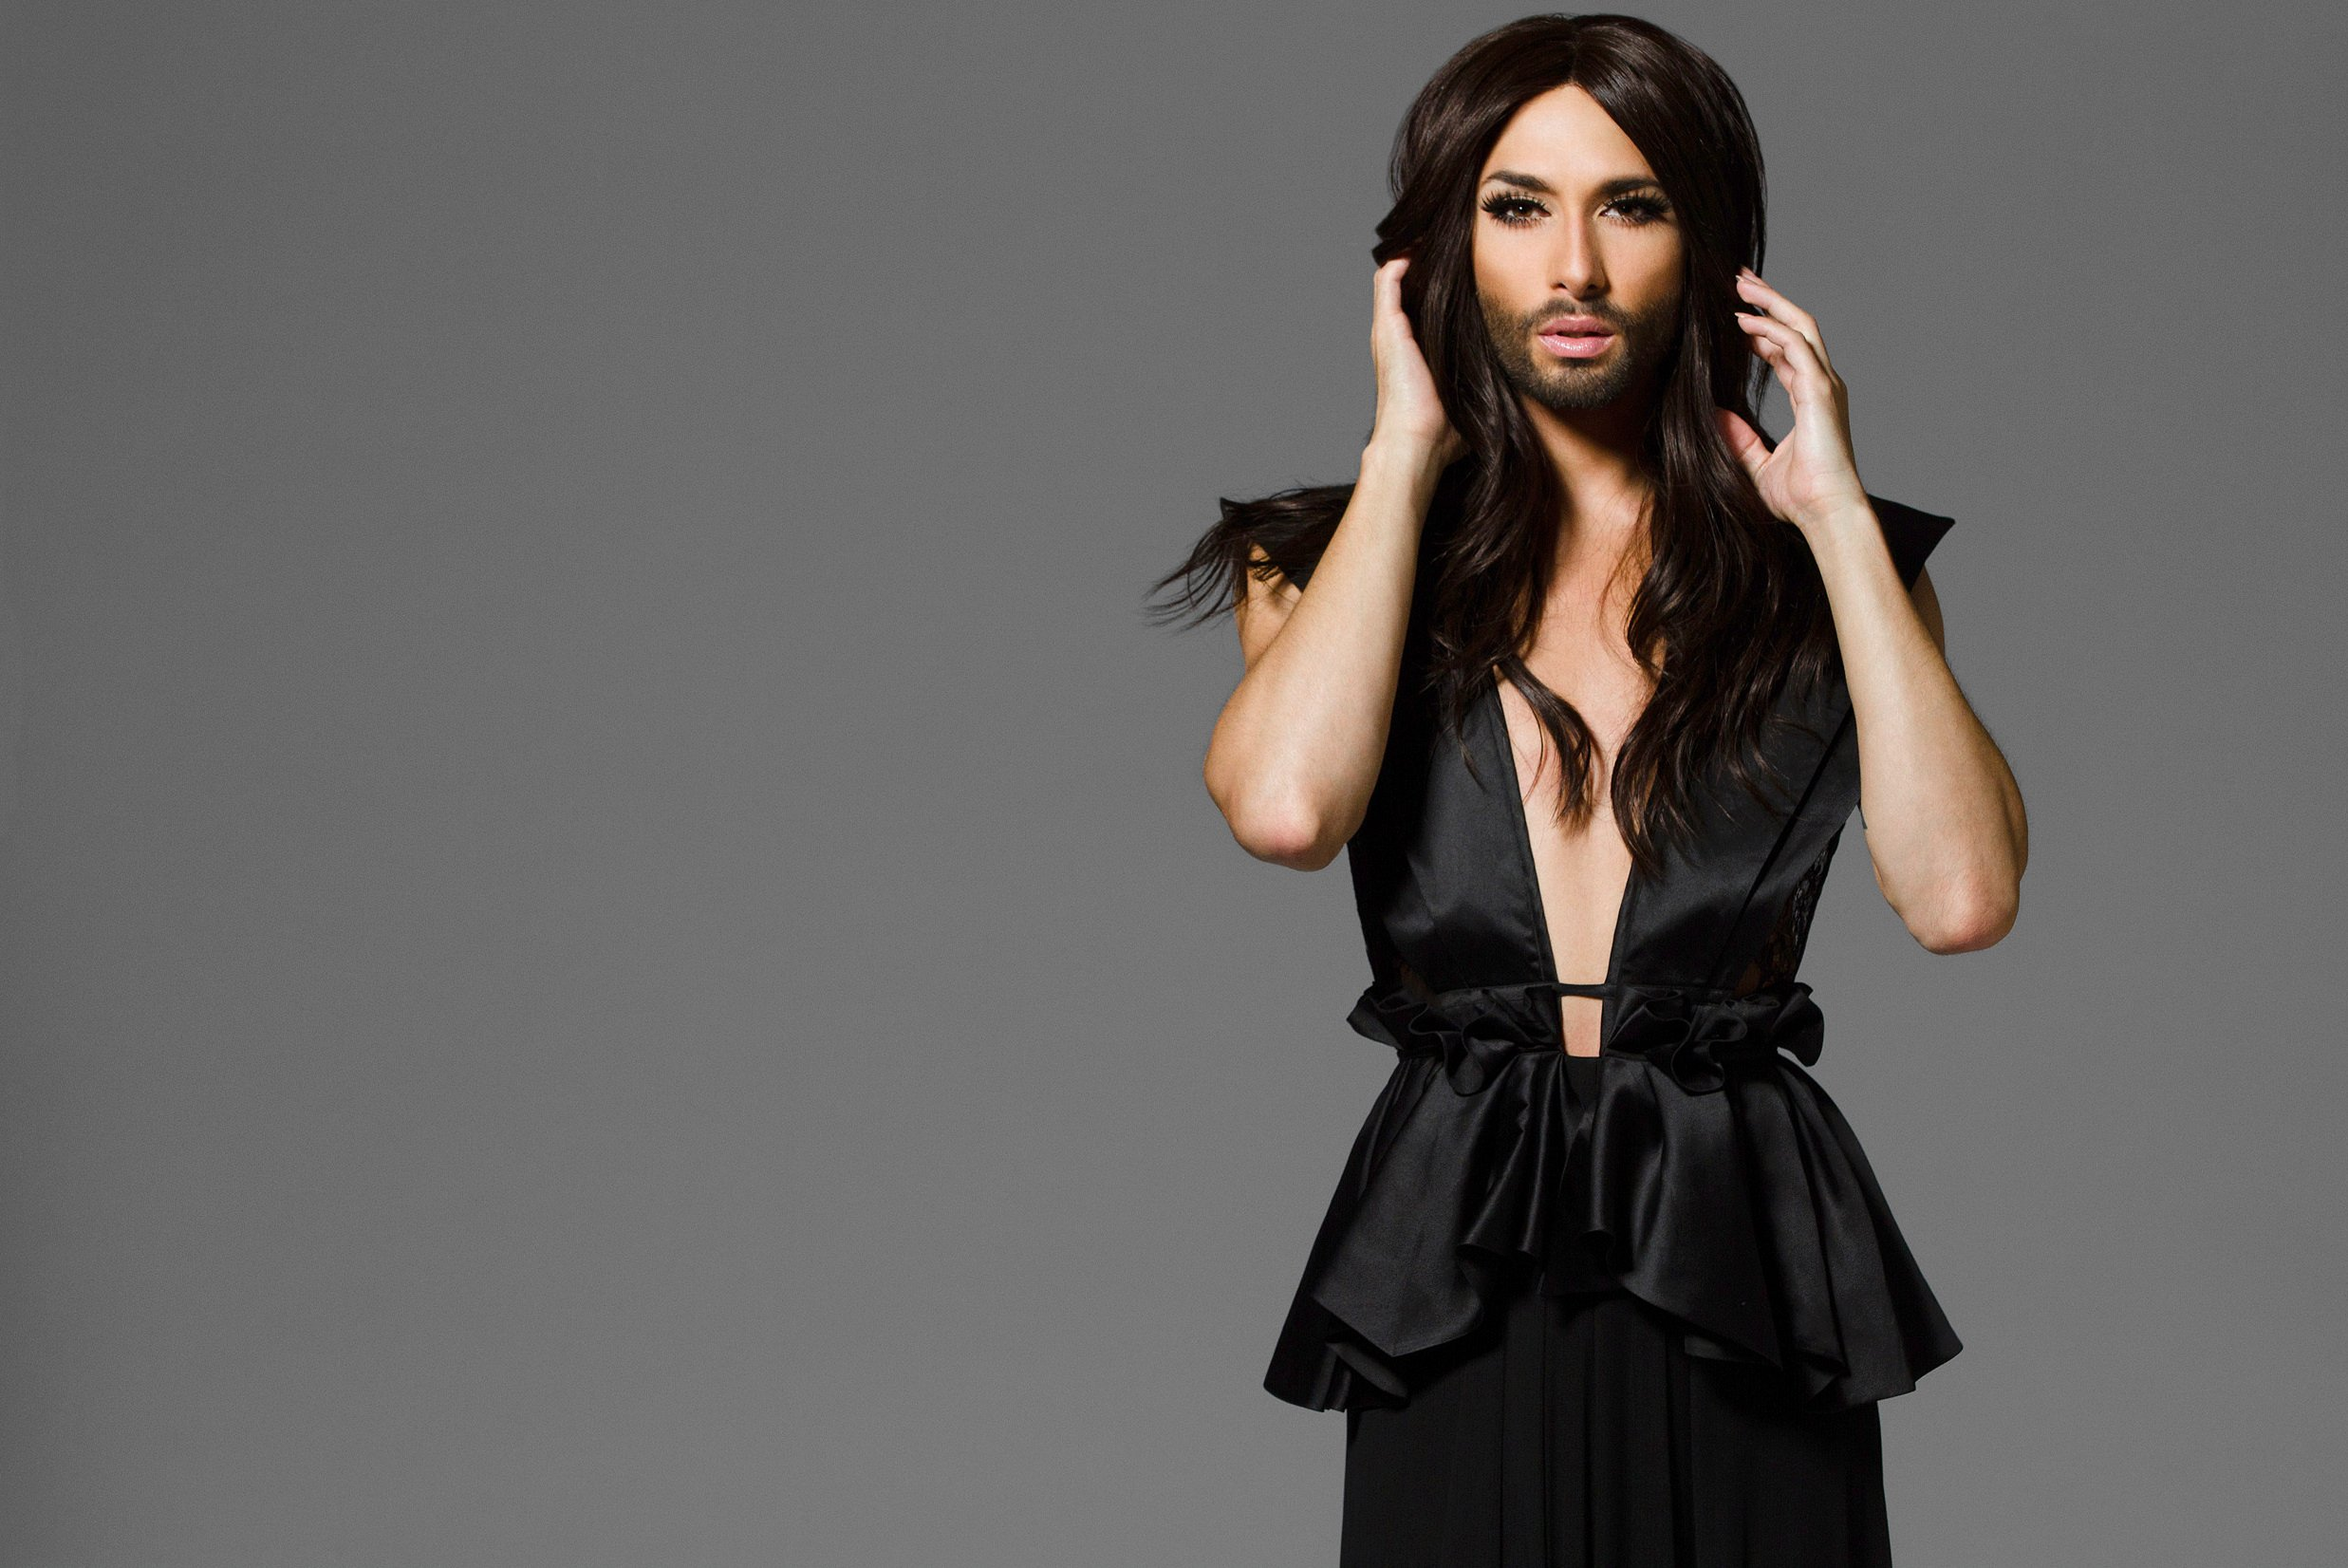 conchita-wurst-esc-eurovision-song-contest